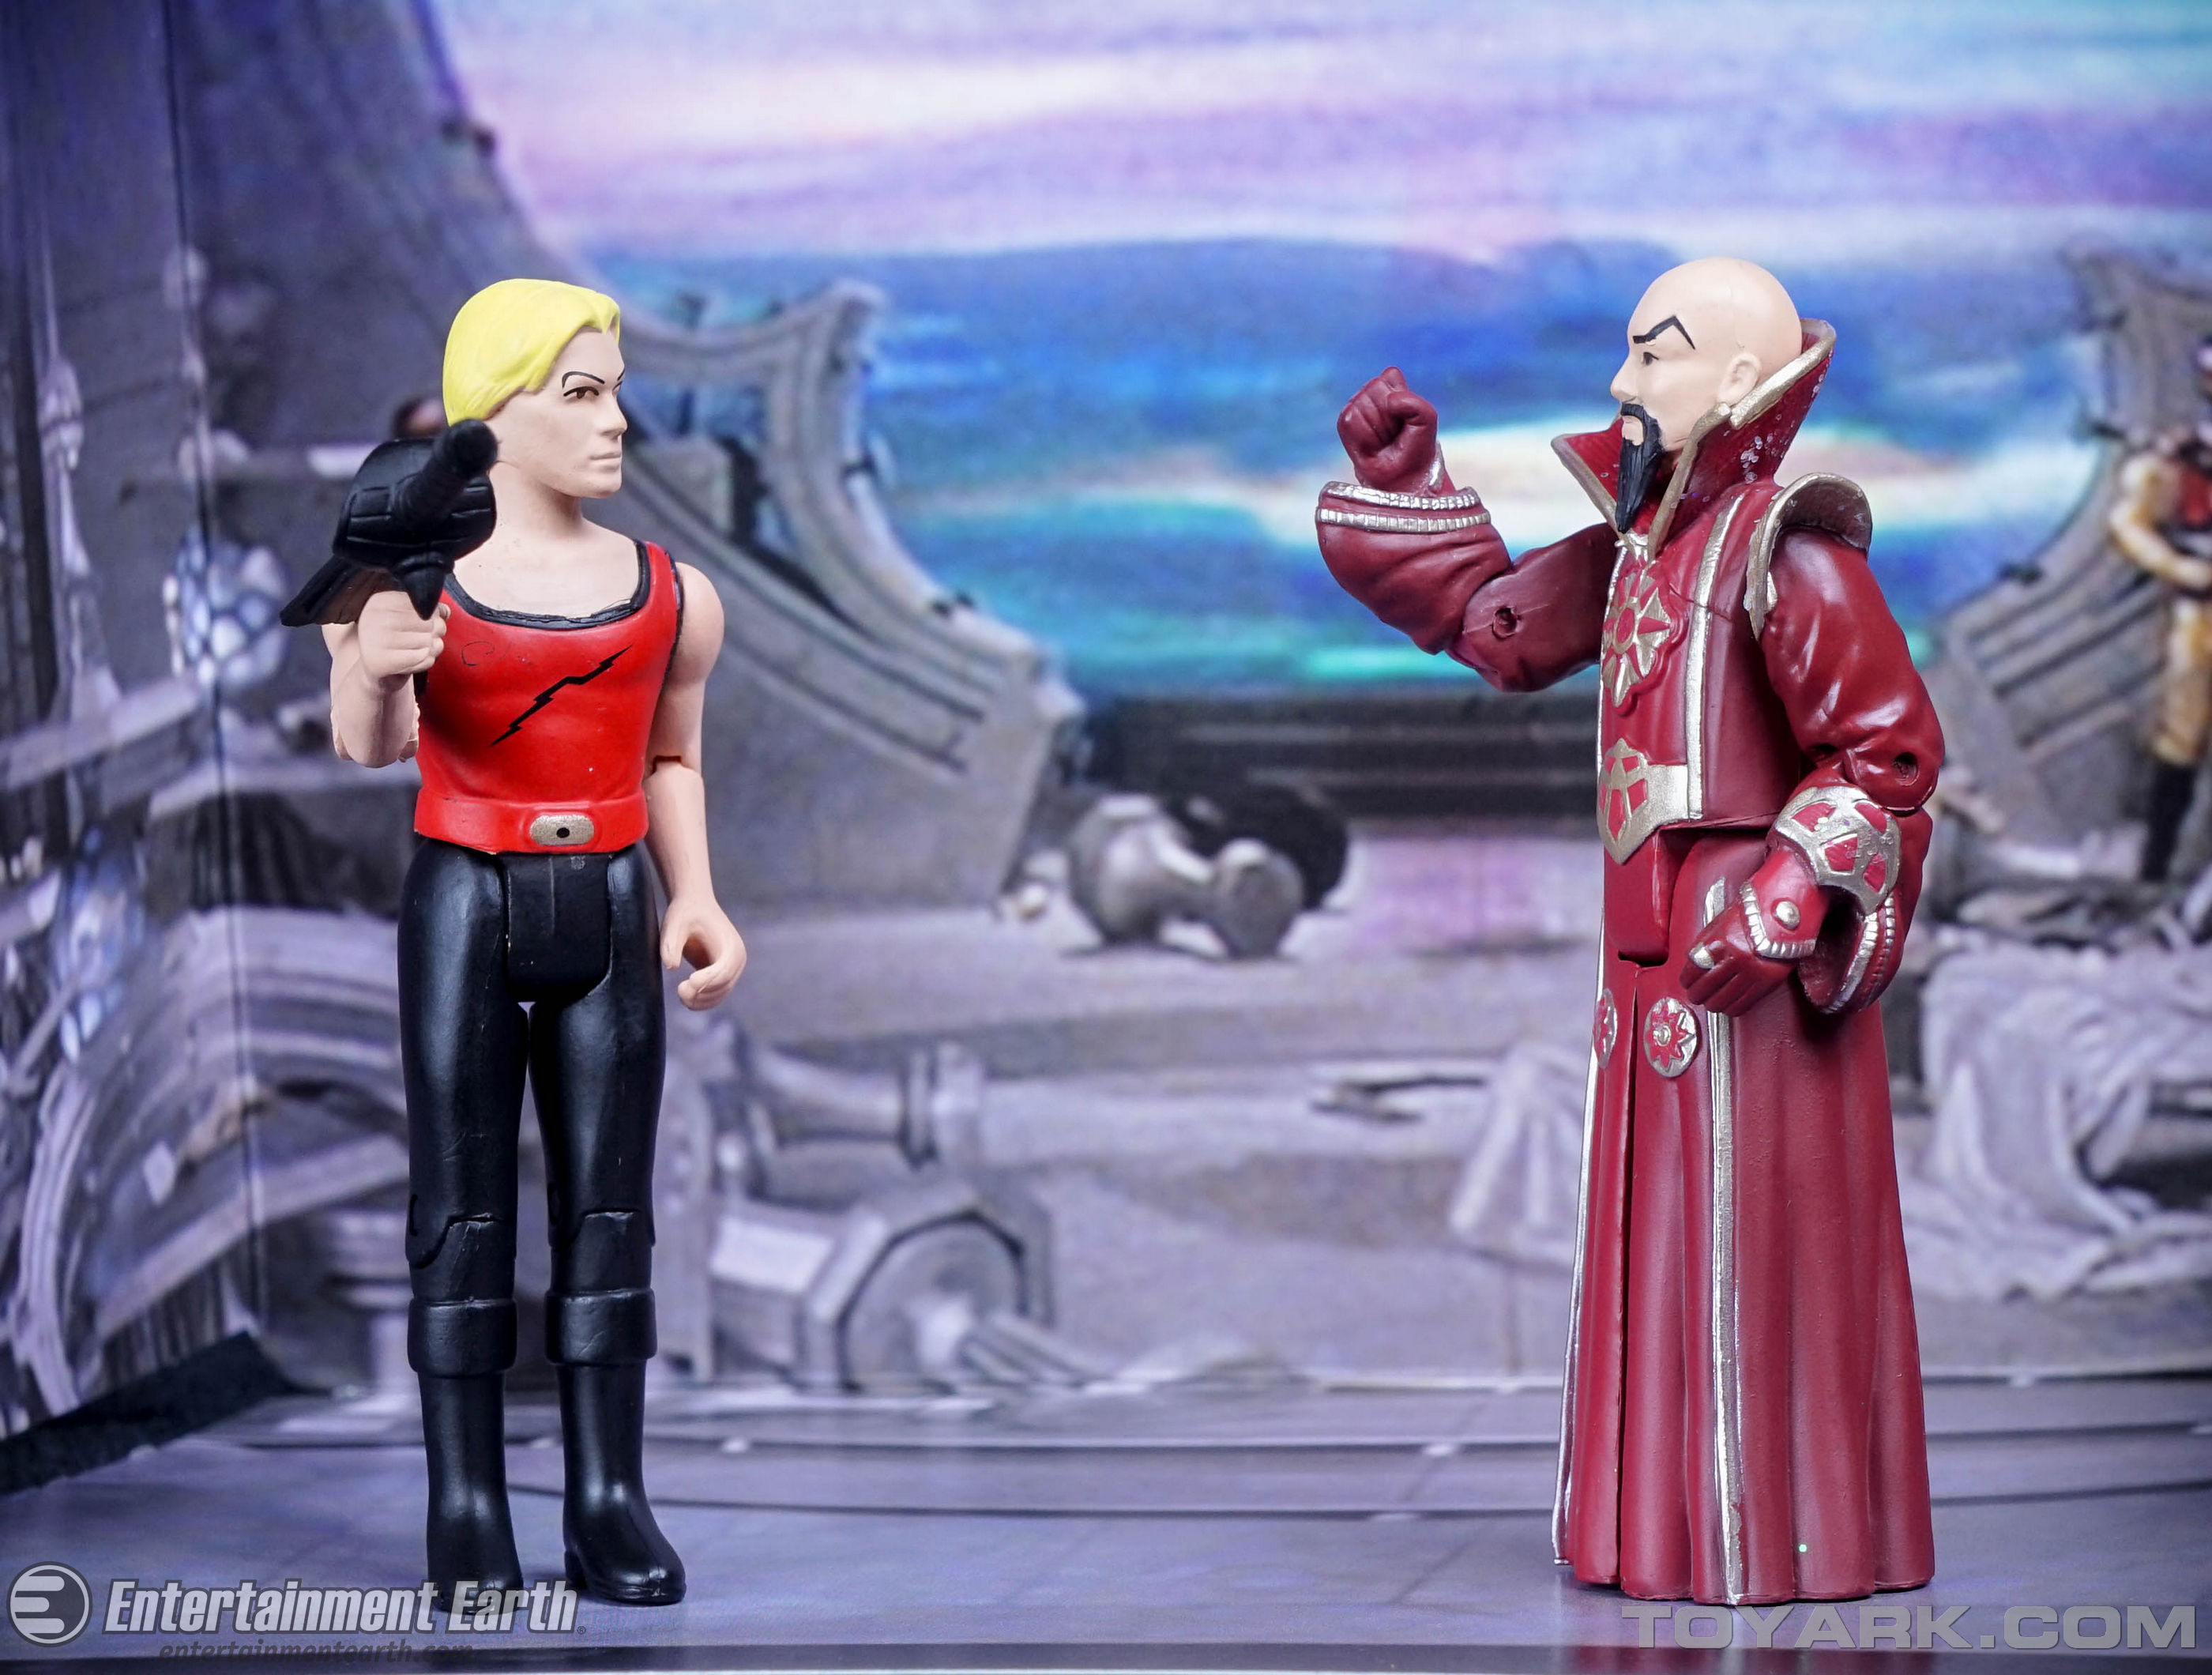 http://news.toyark.com/wp-content/uploads/sites/4/2015/09/Flash-Gordon-Series-1-Figures-021.jpg